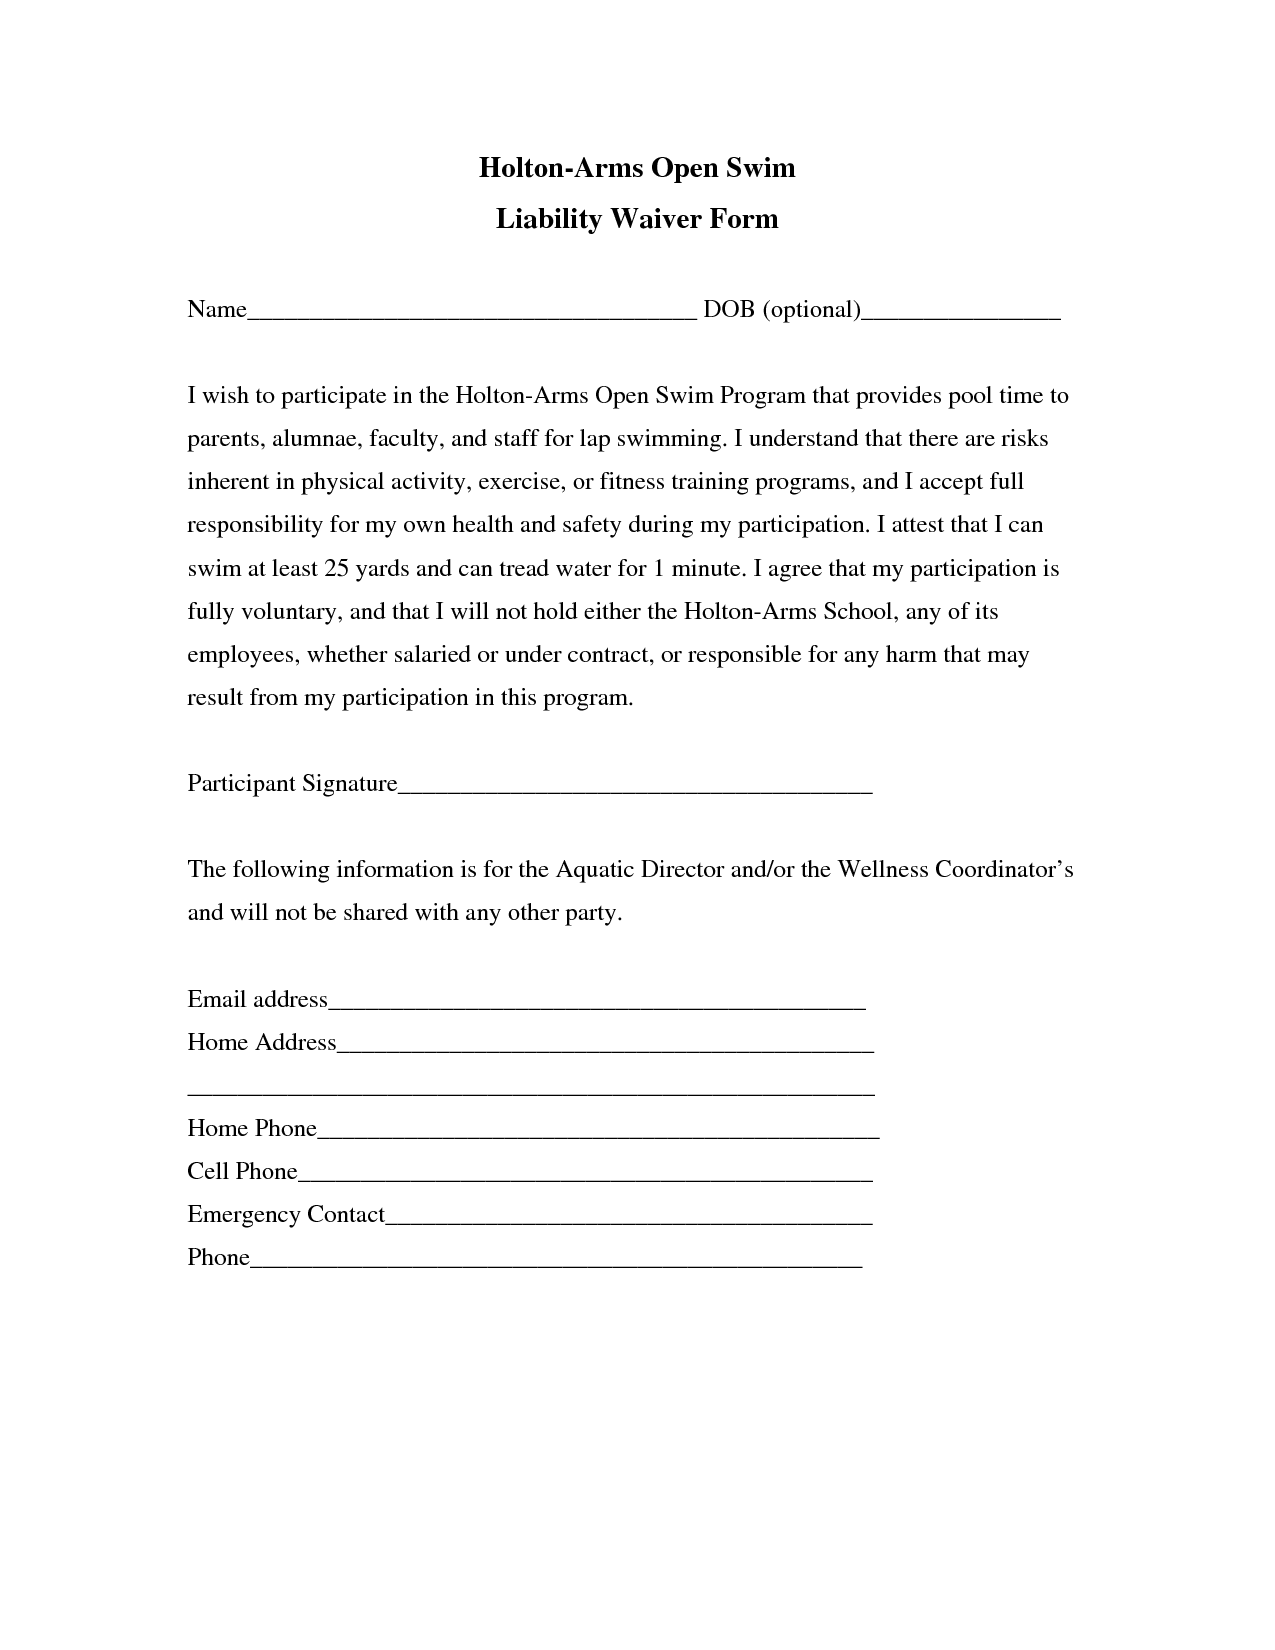 Liability Insurance Liability Insurance Waiver Template – Liability Waiver Template Free